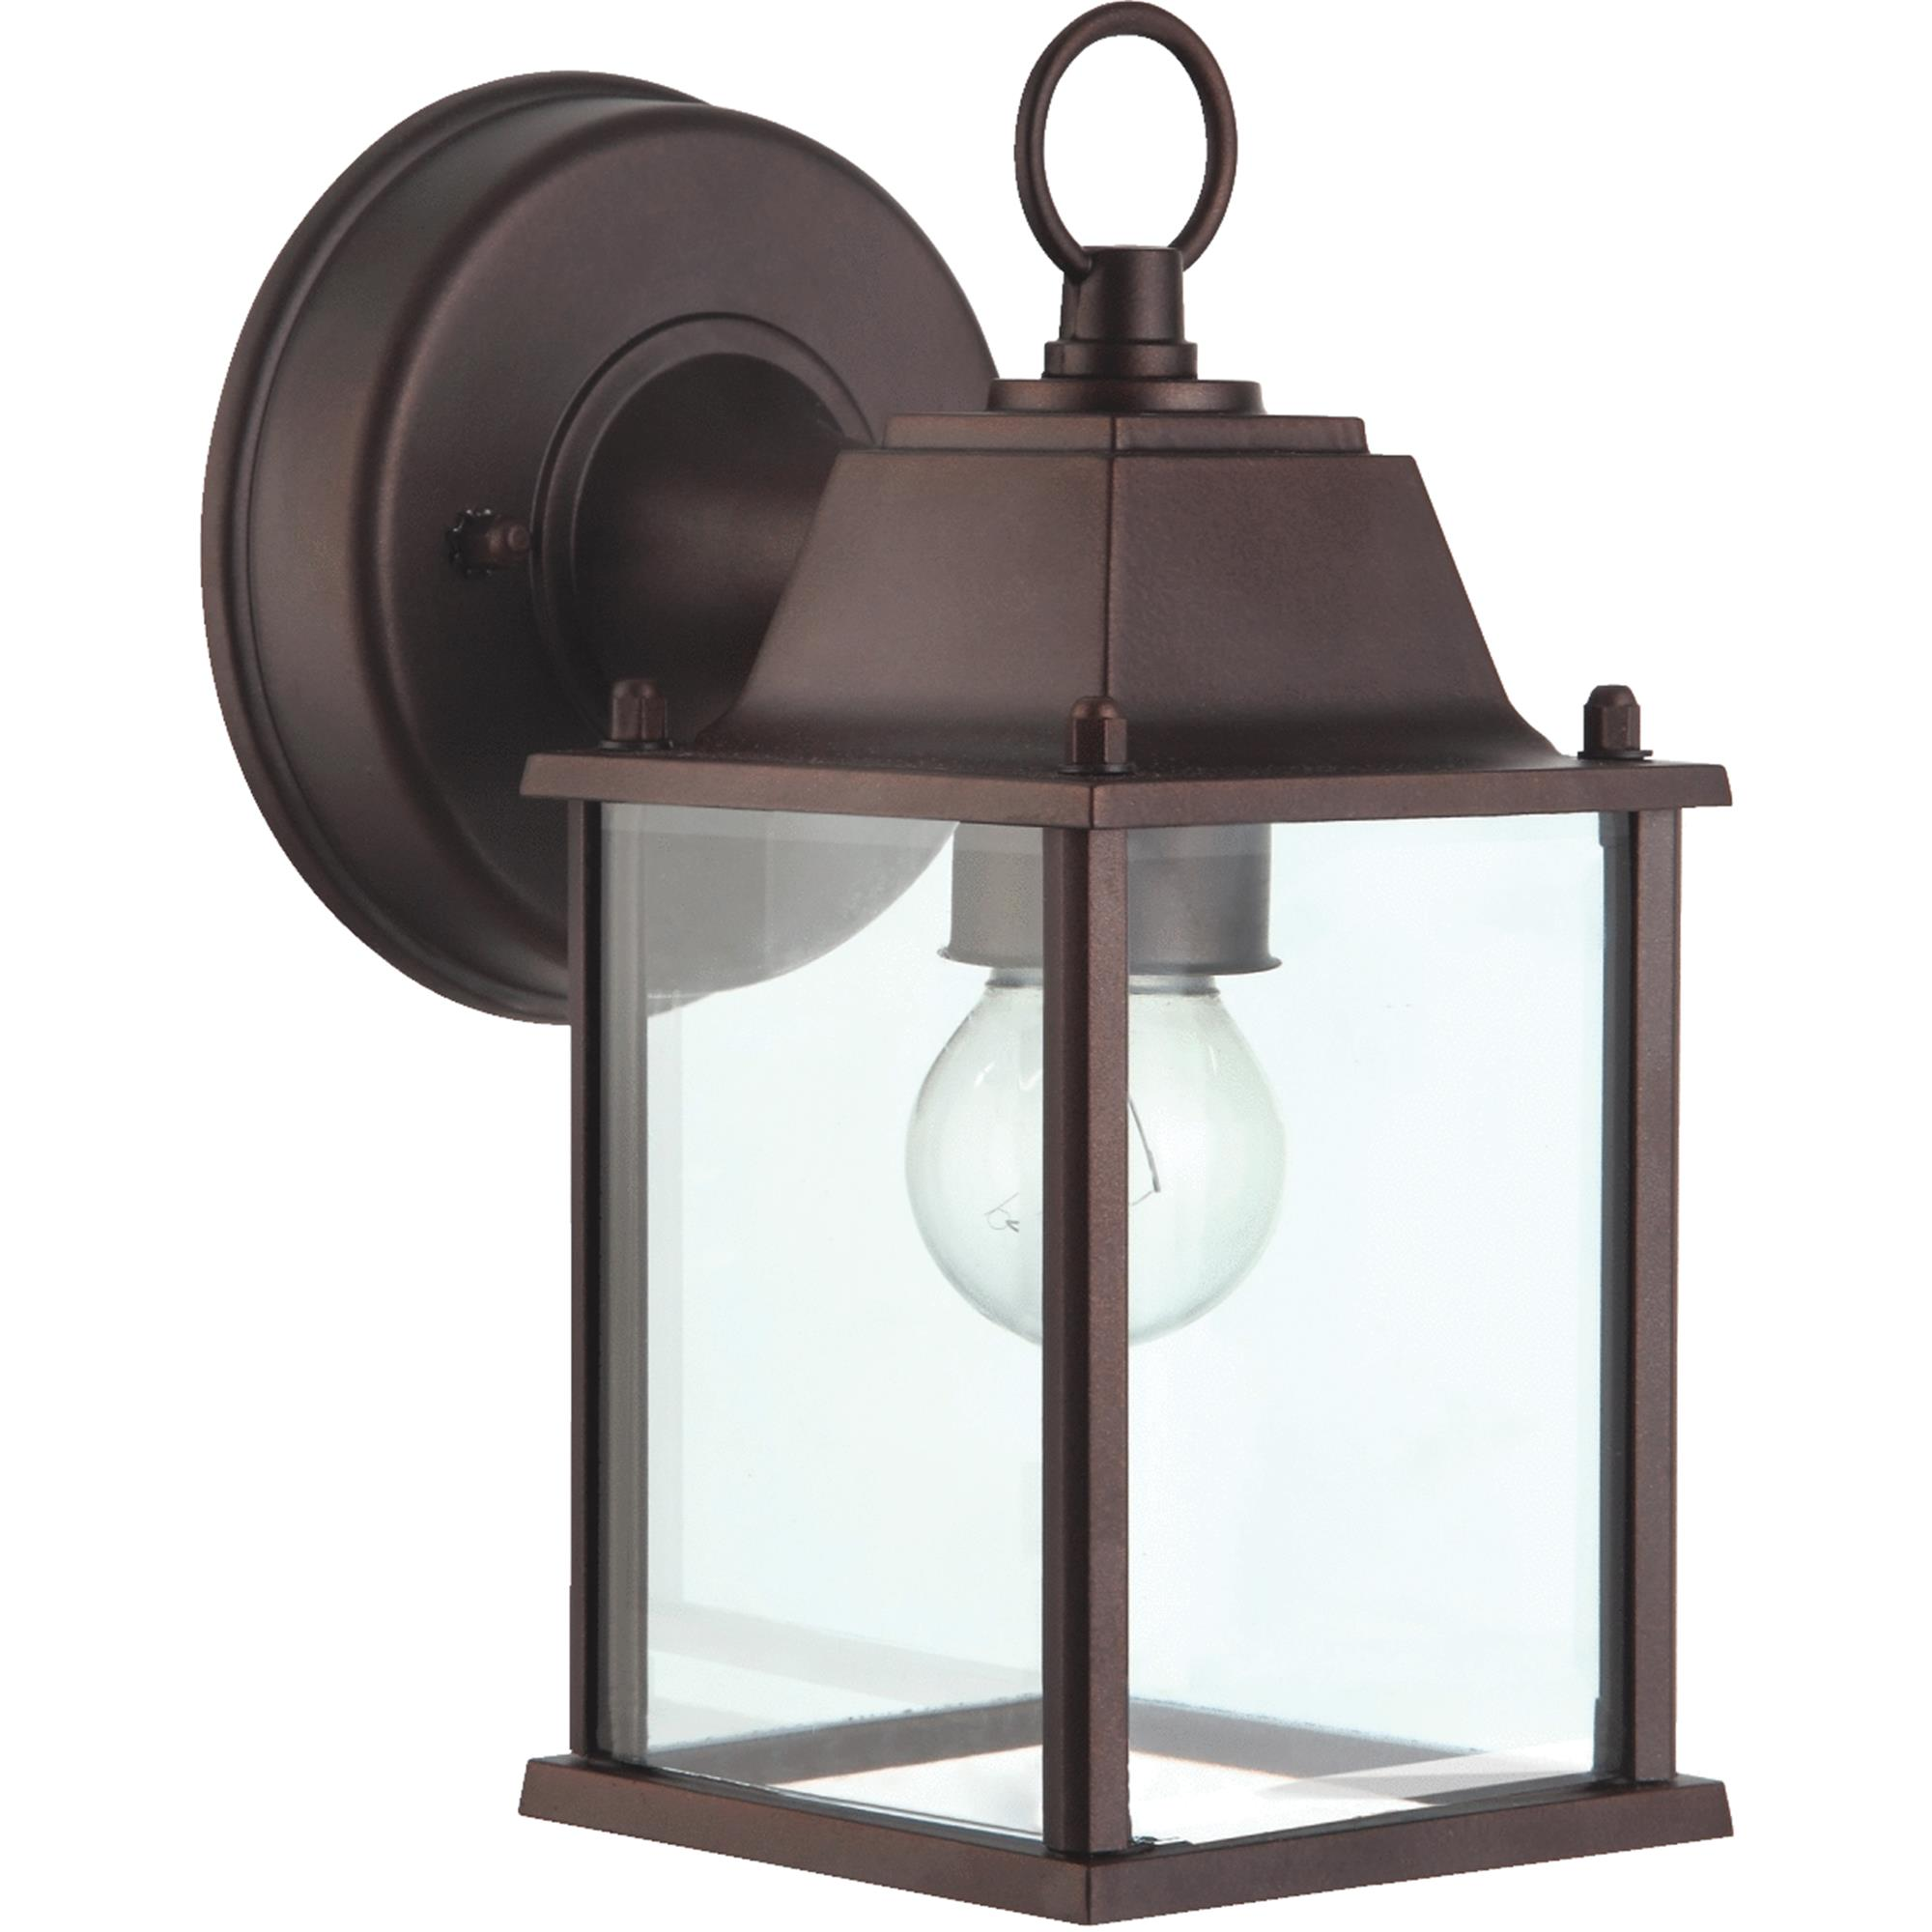 Home Impressions Incandescent Lantern Outdoor Wall Light Fixture